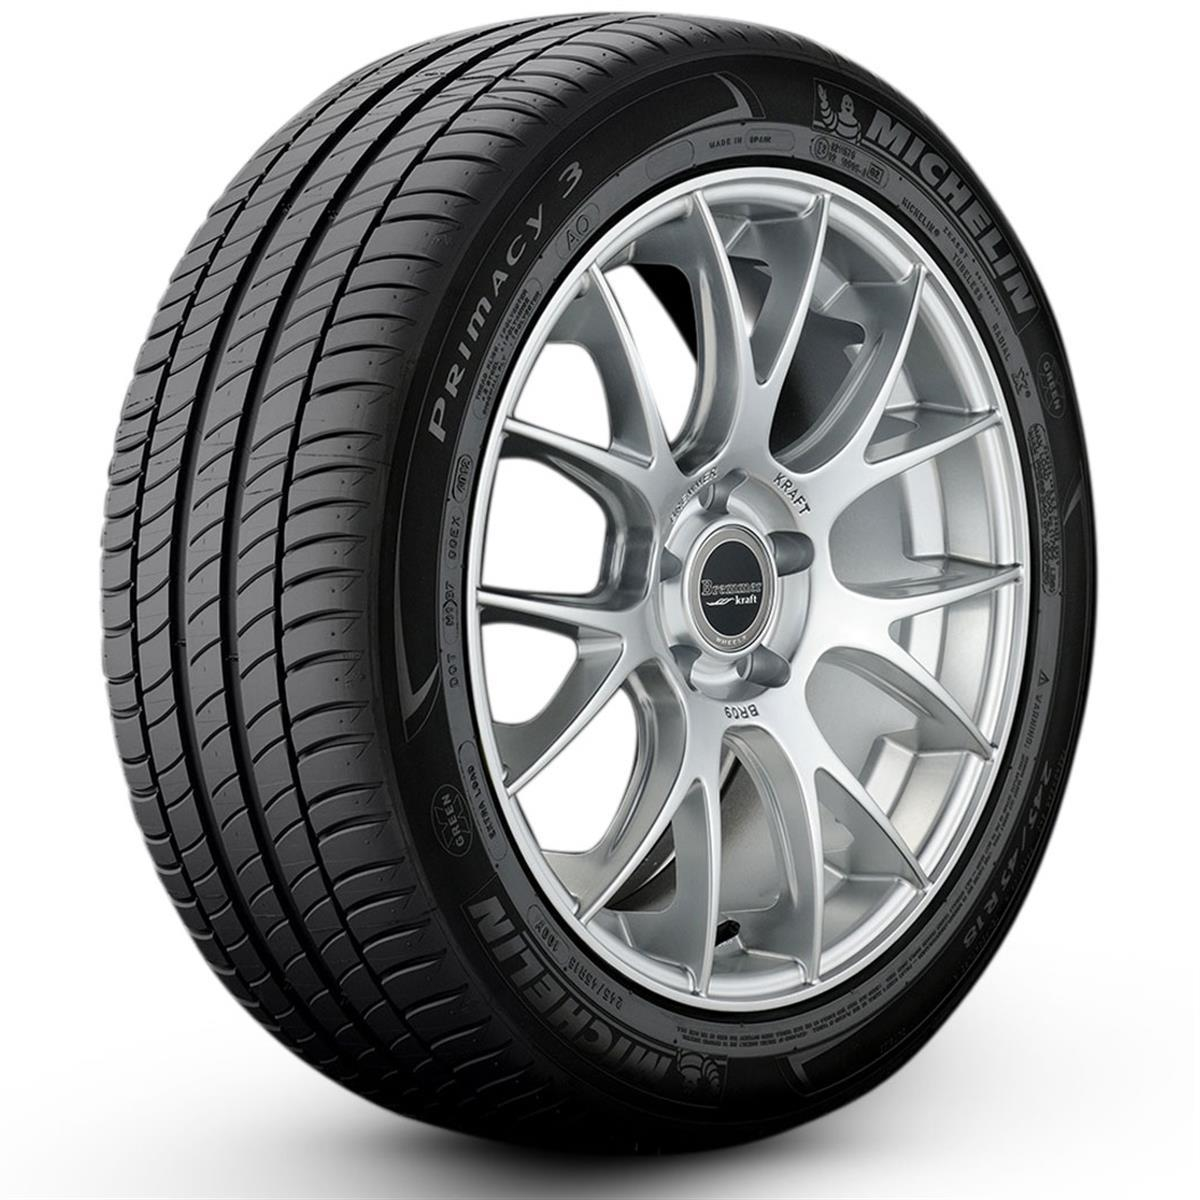 PNEU 235/50-17 96W PRIMACY 3 MICHELIN